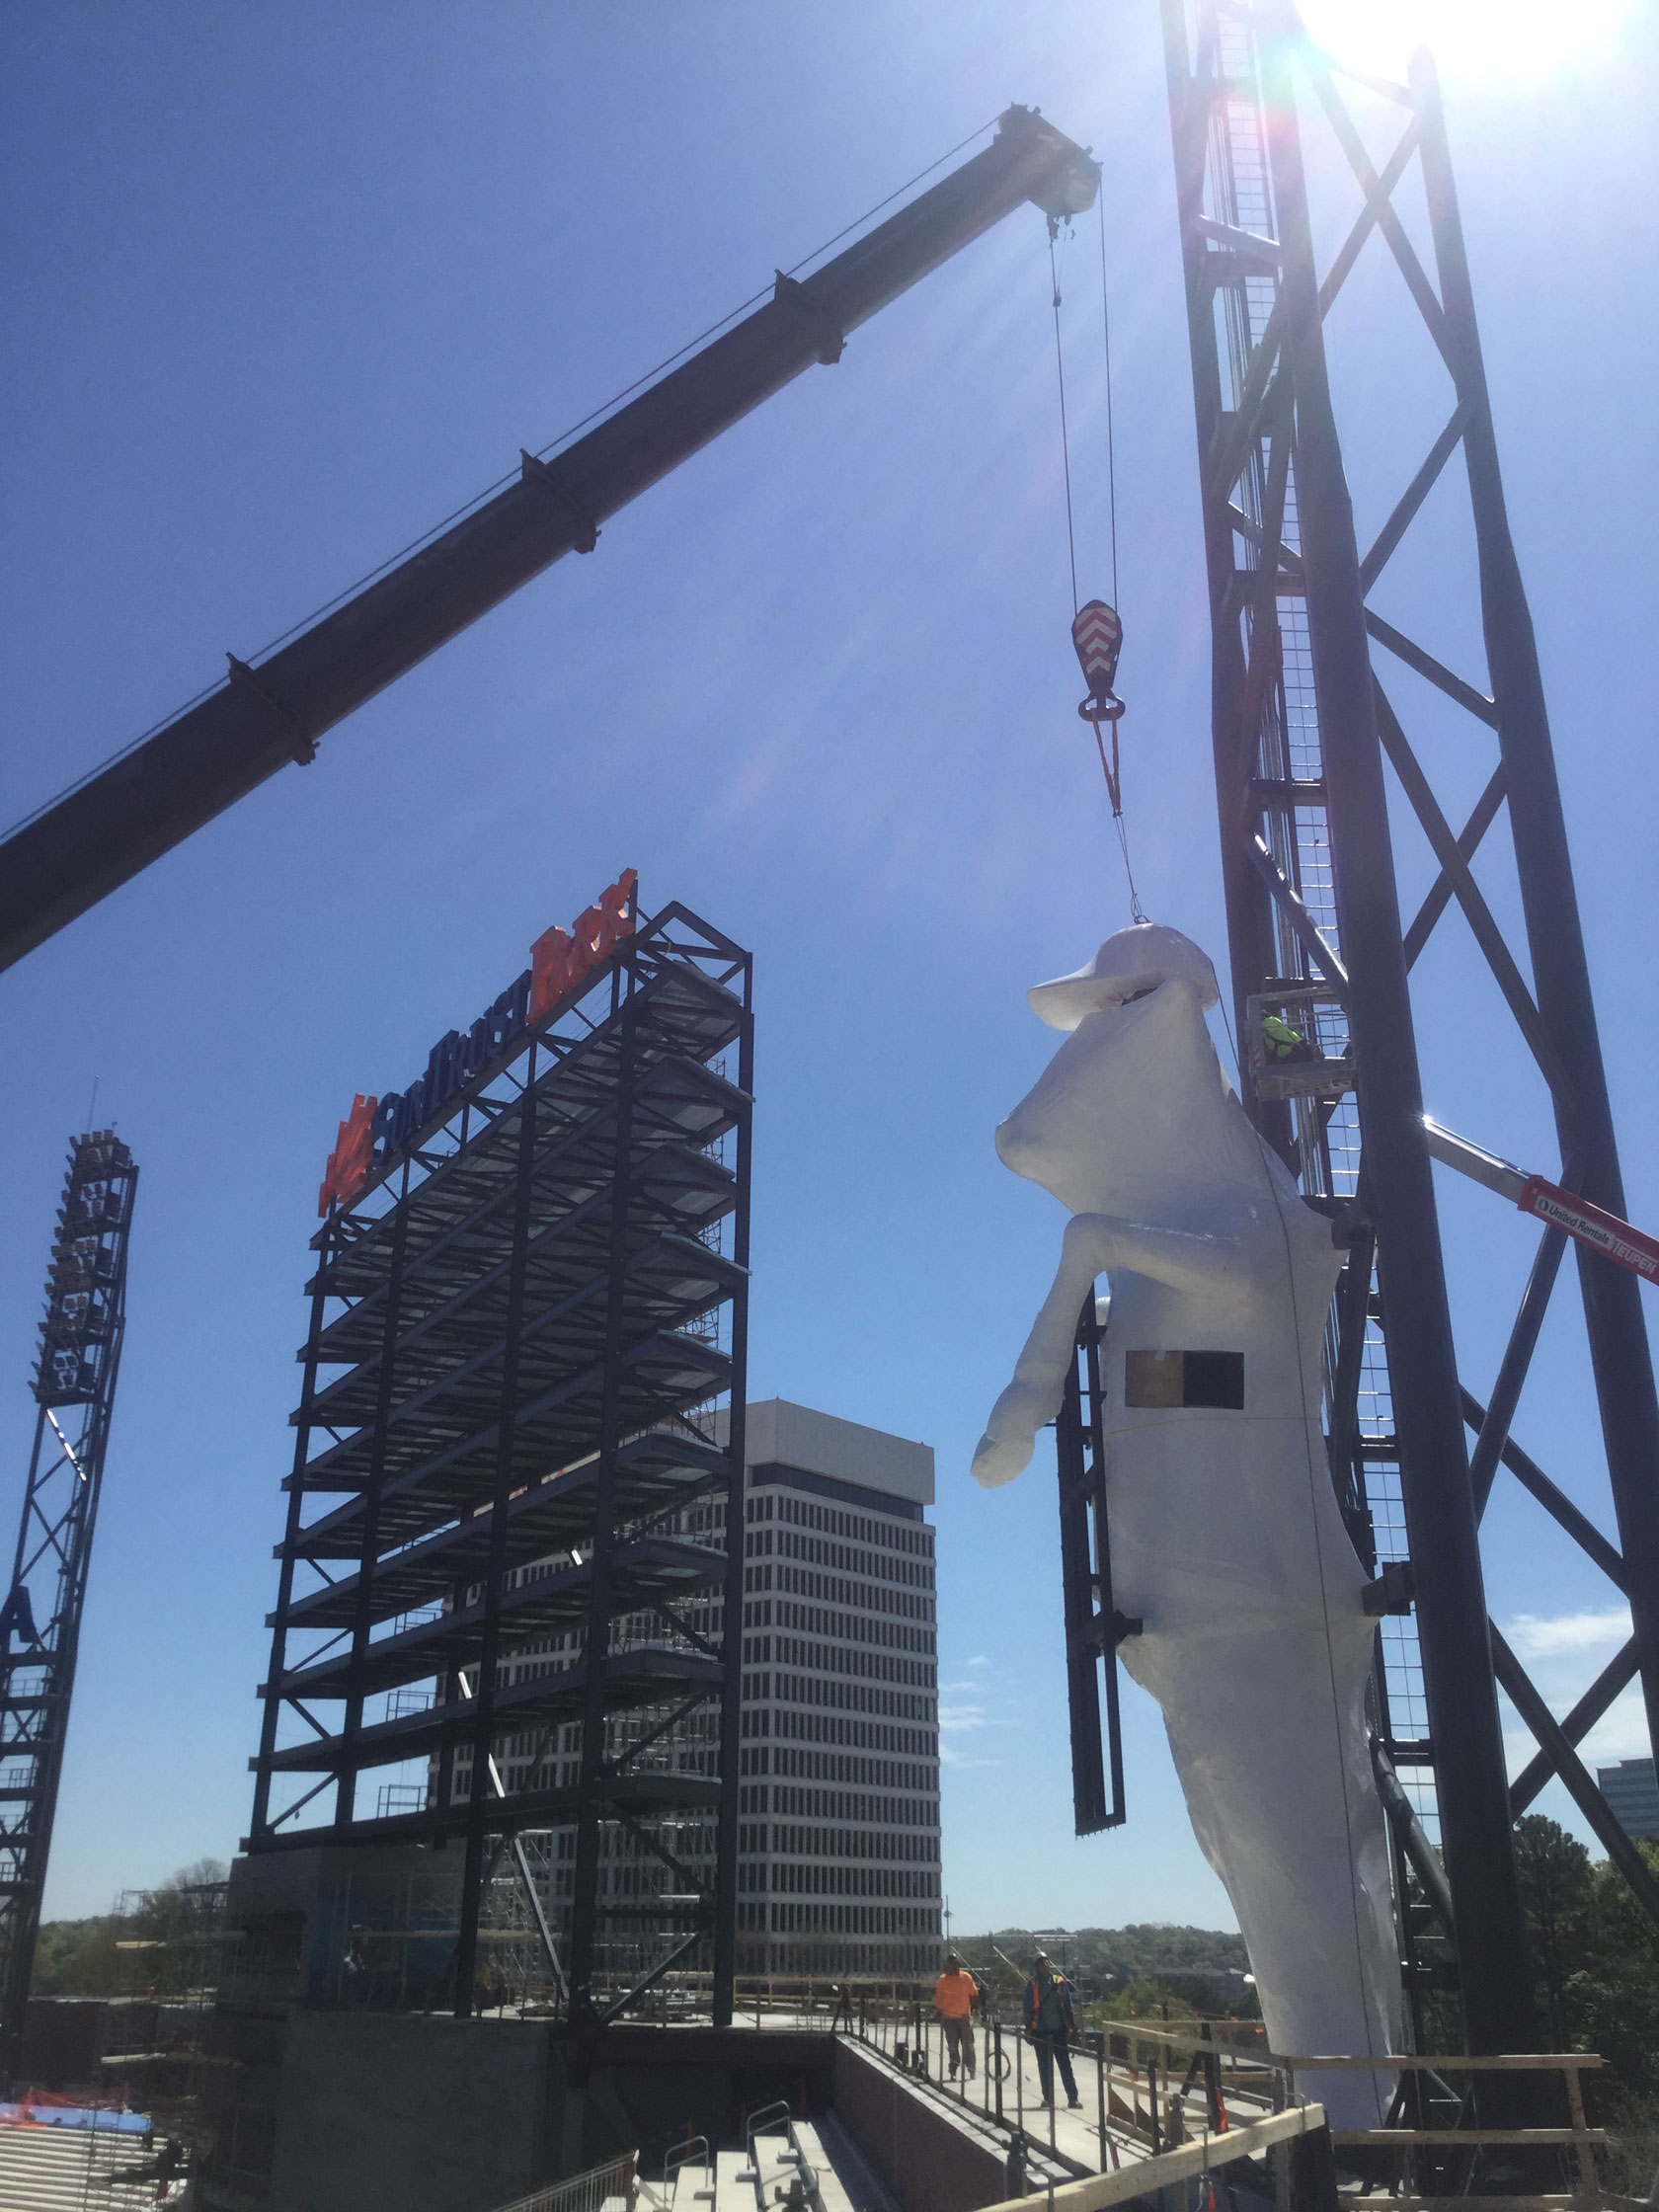 The 40-foot icon is hoisted into SunTrust Park in a protective wrap that shields it from debris